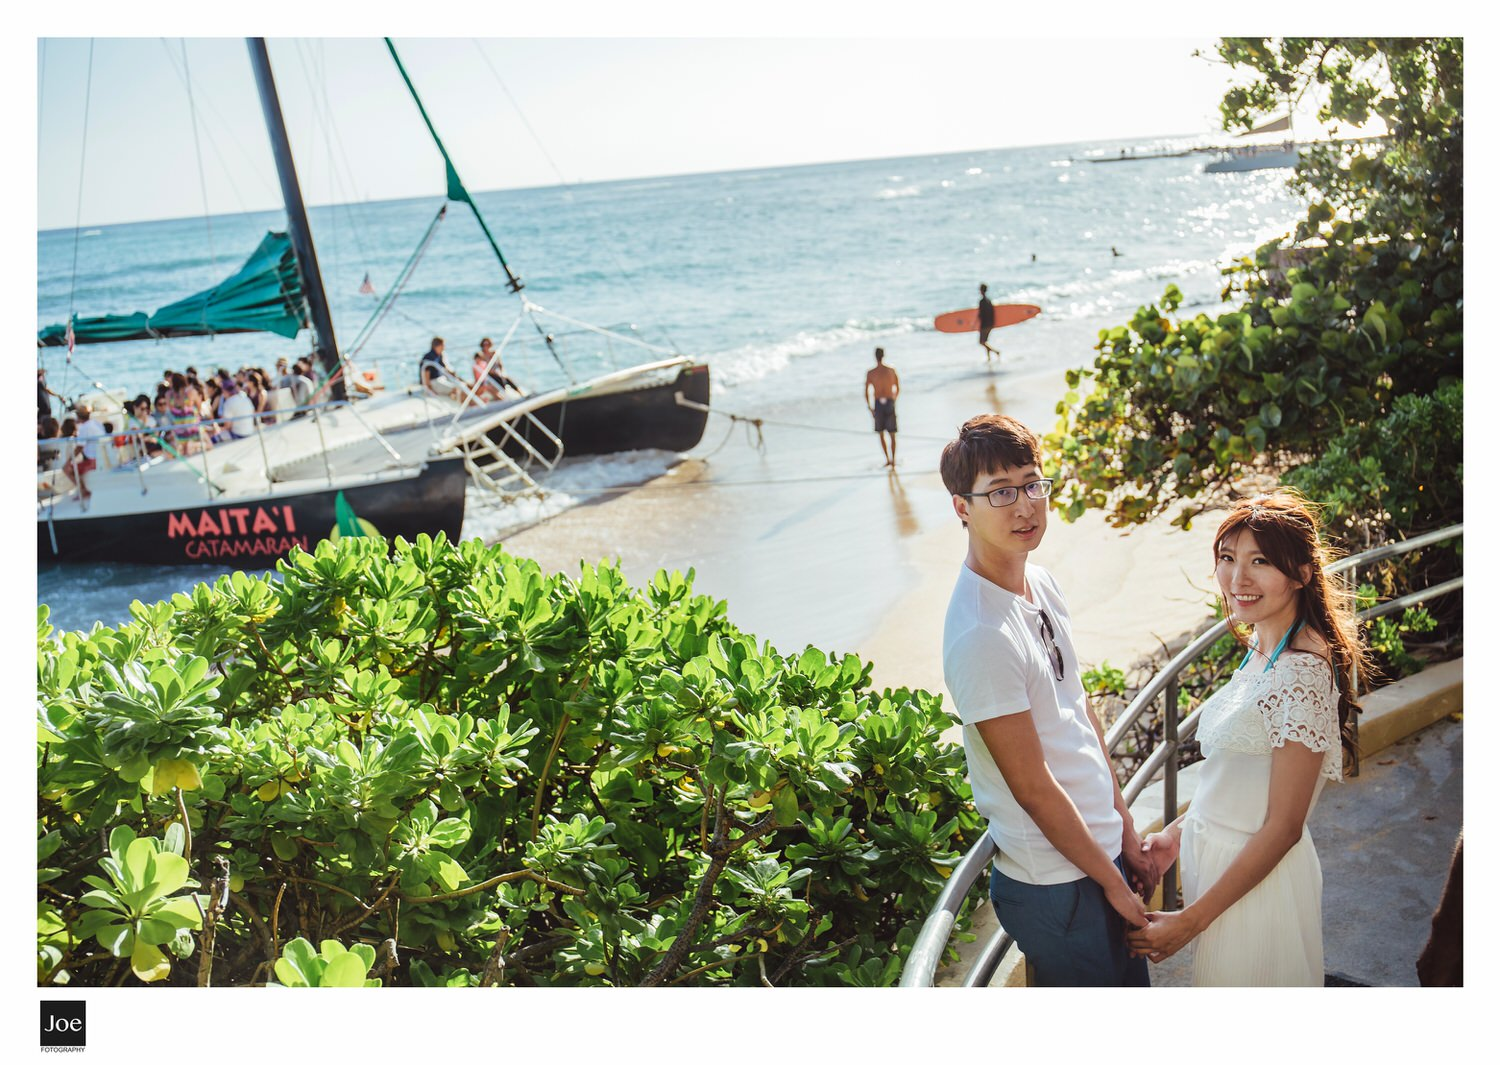 111-maitai-catamaran-hawaii-pre-wedding-tiffany-tony-joe-fotography.jpg